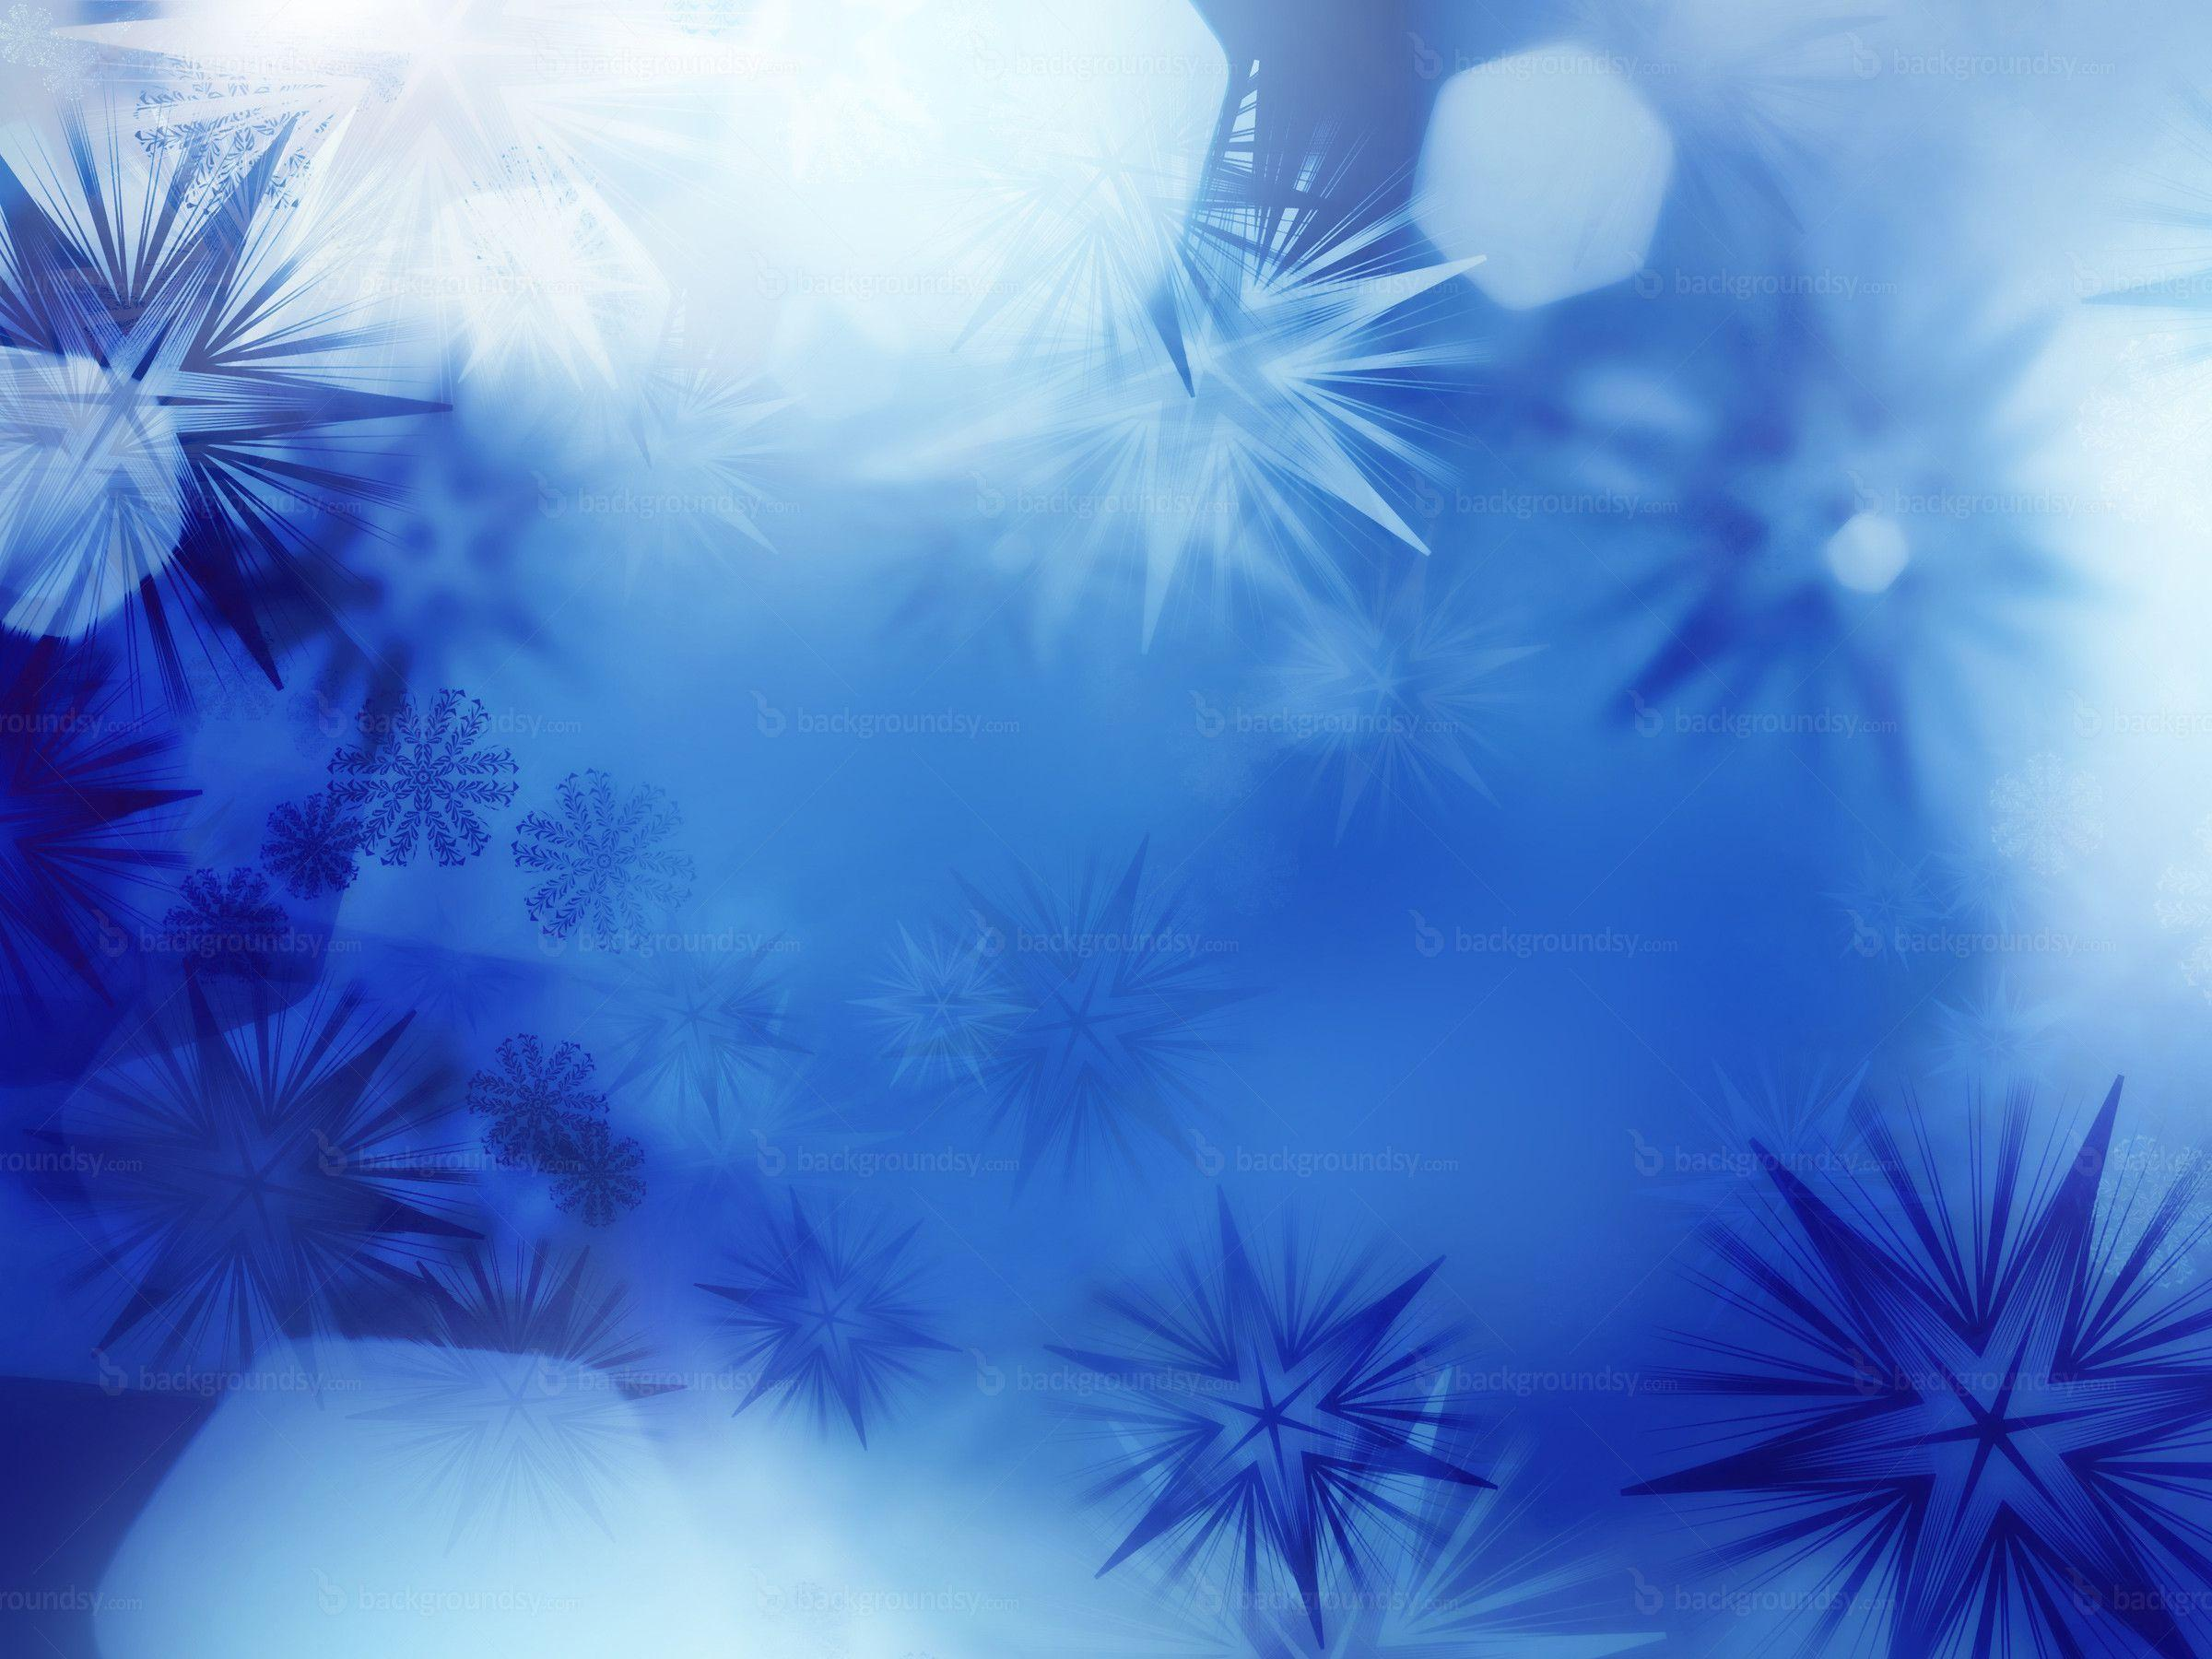 Winter Snow Backgrounds 2400x1800